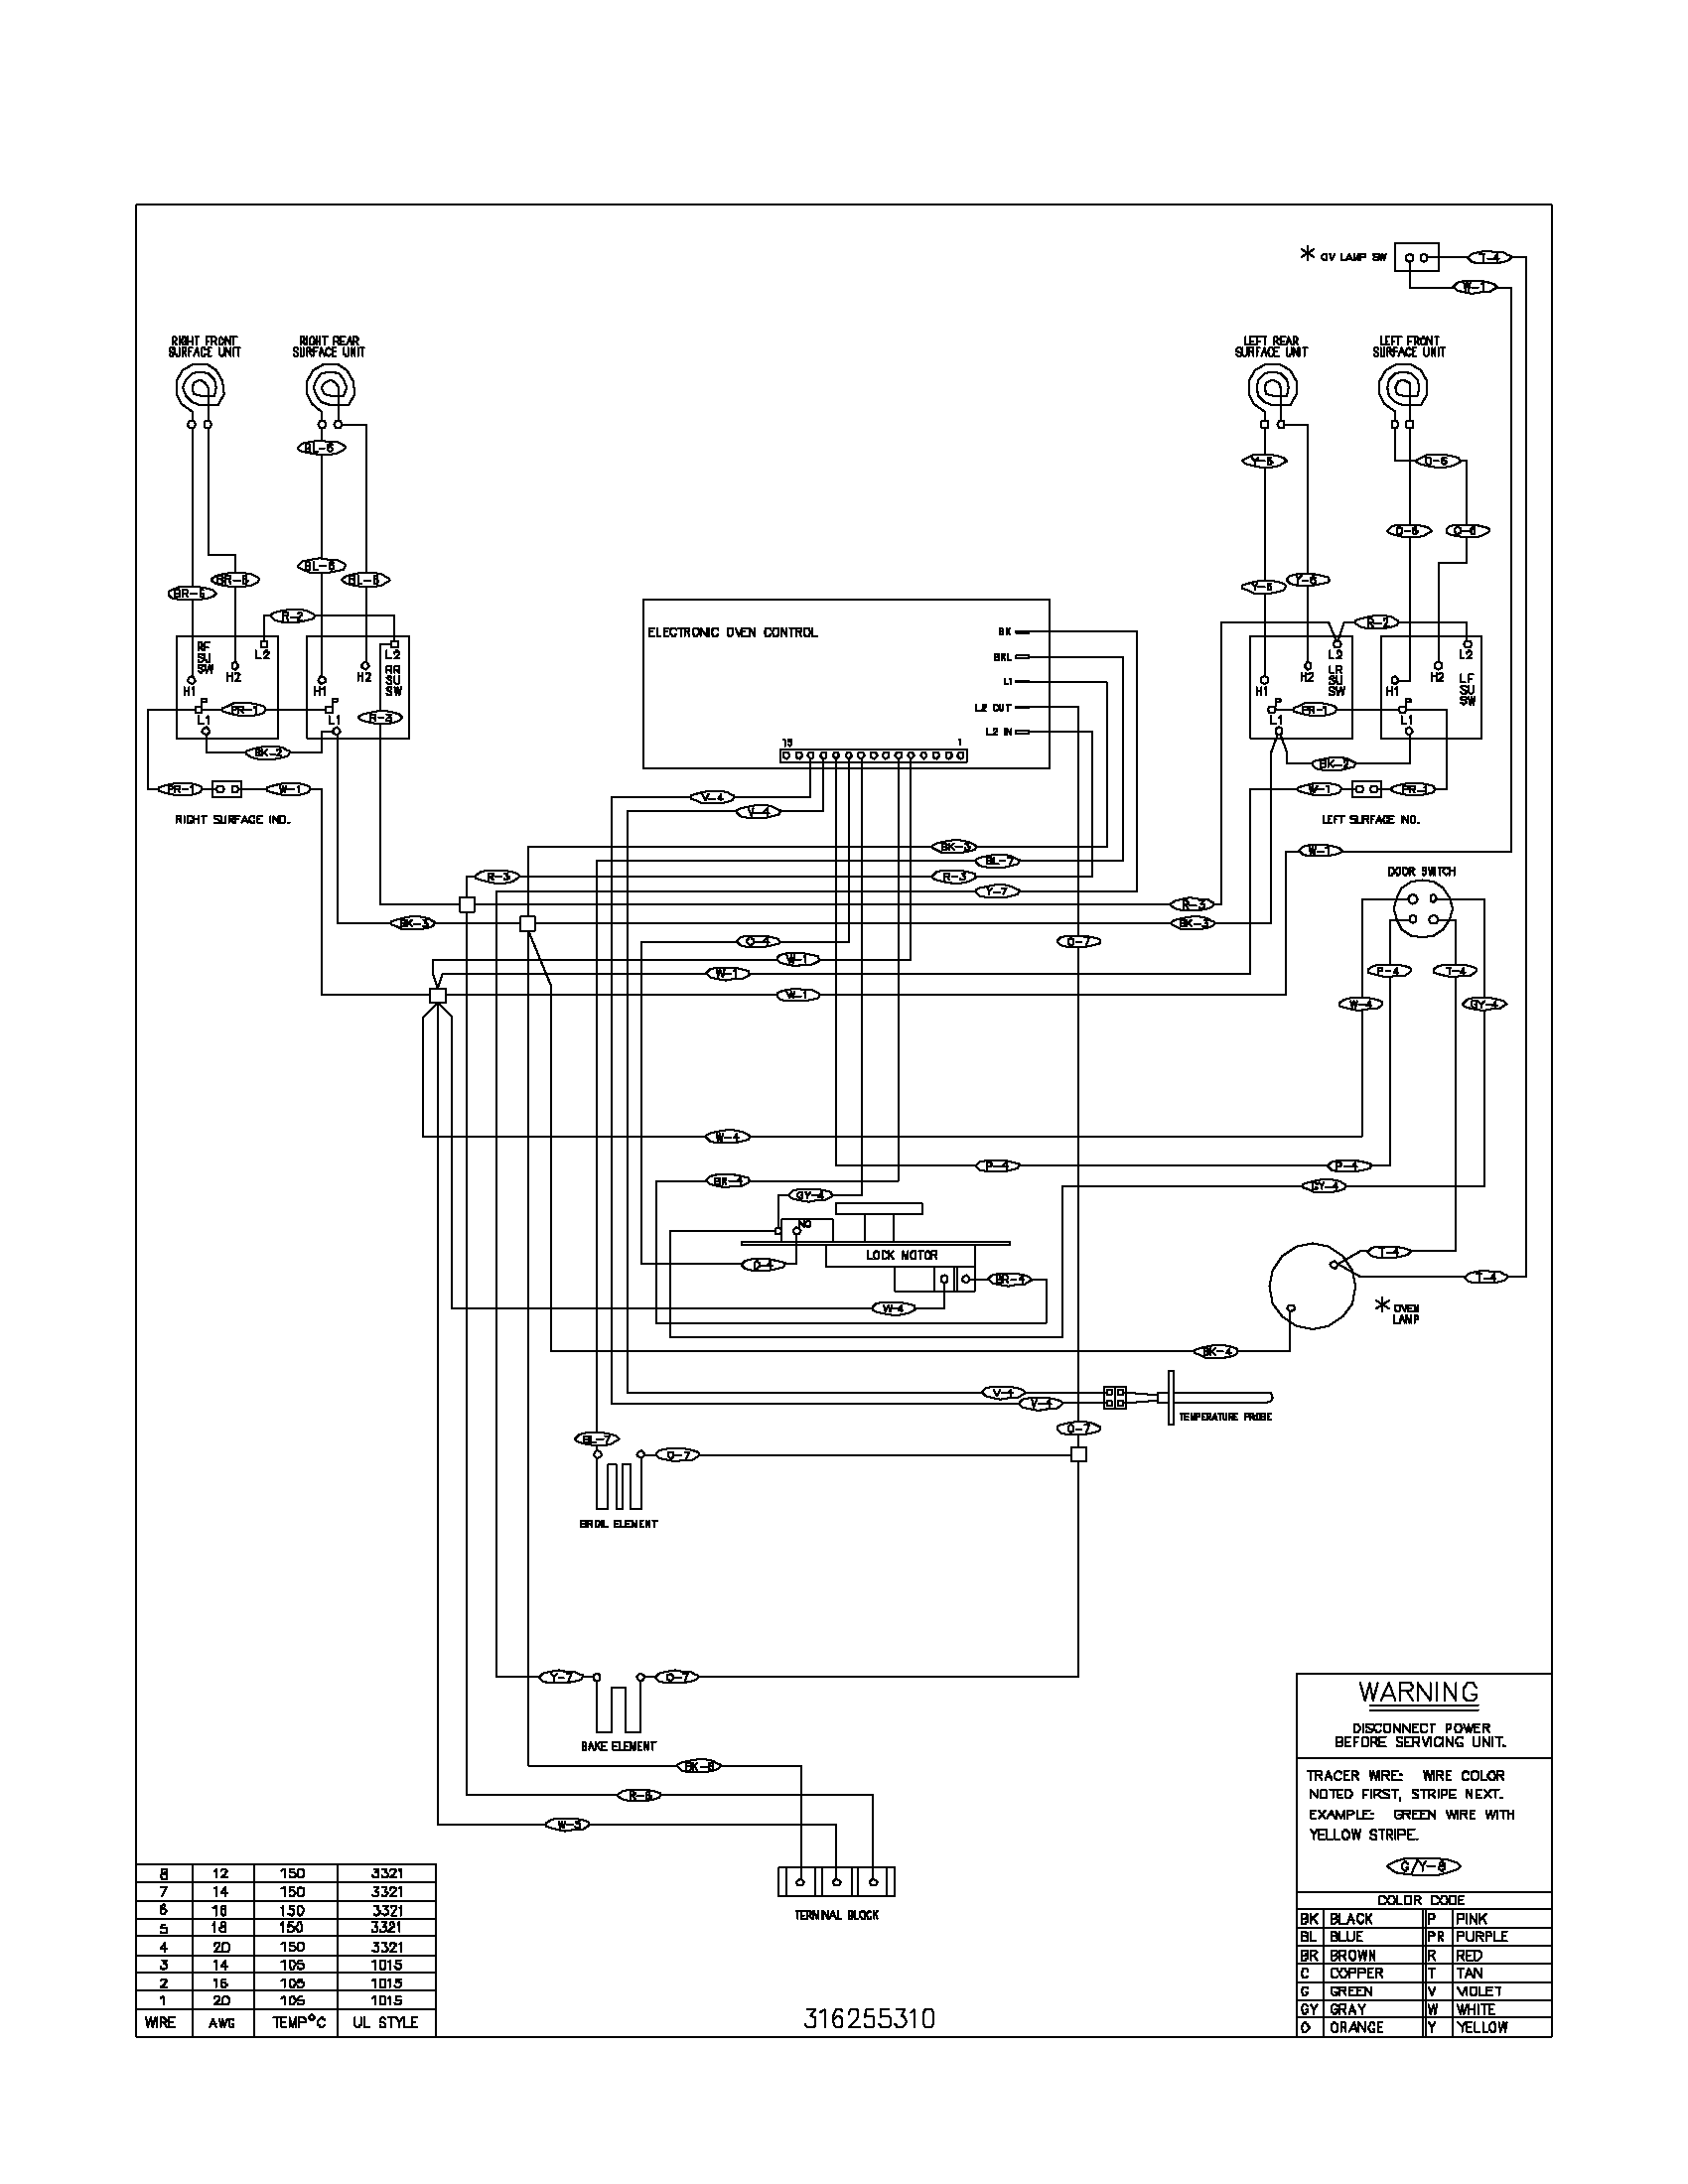 wiring diagram parts frigidaire stove wiring diagram frigidaire washer wiring diagram  at crackthecode.co